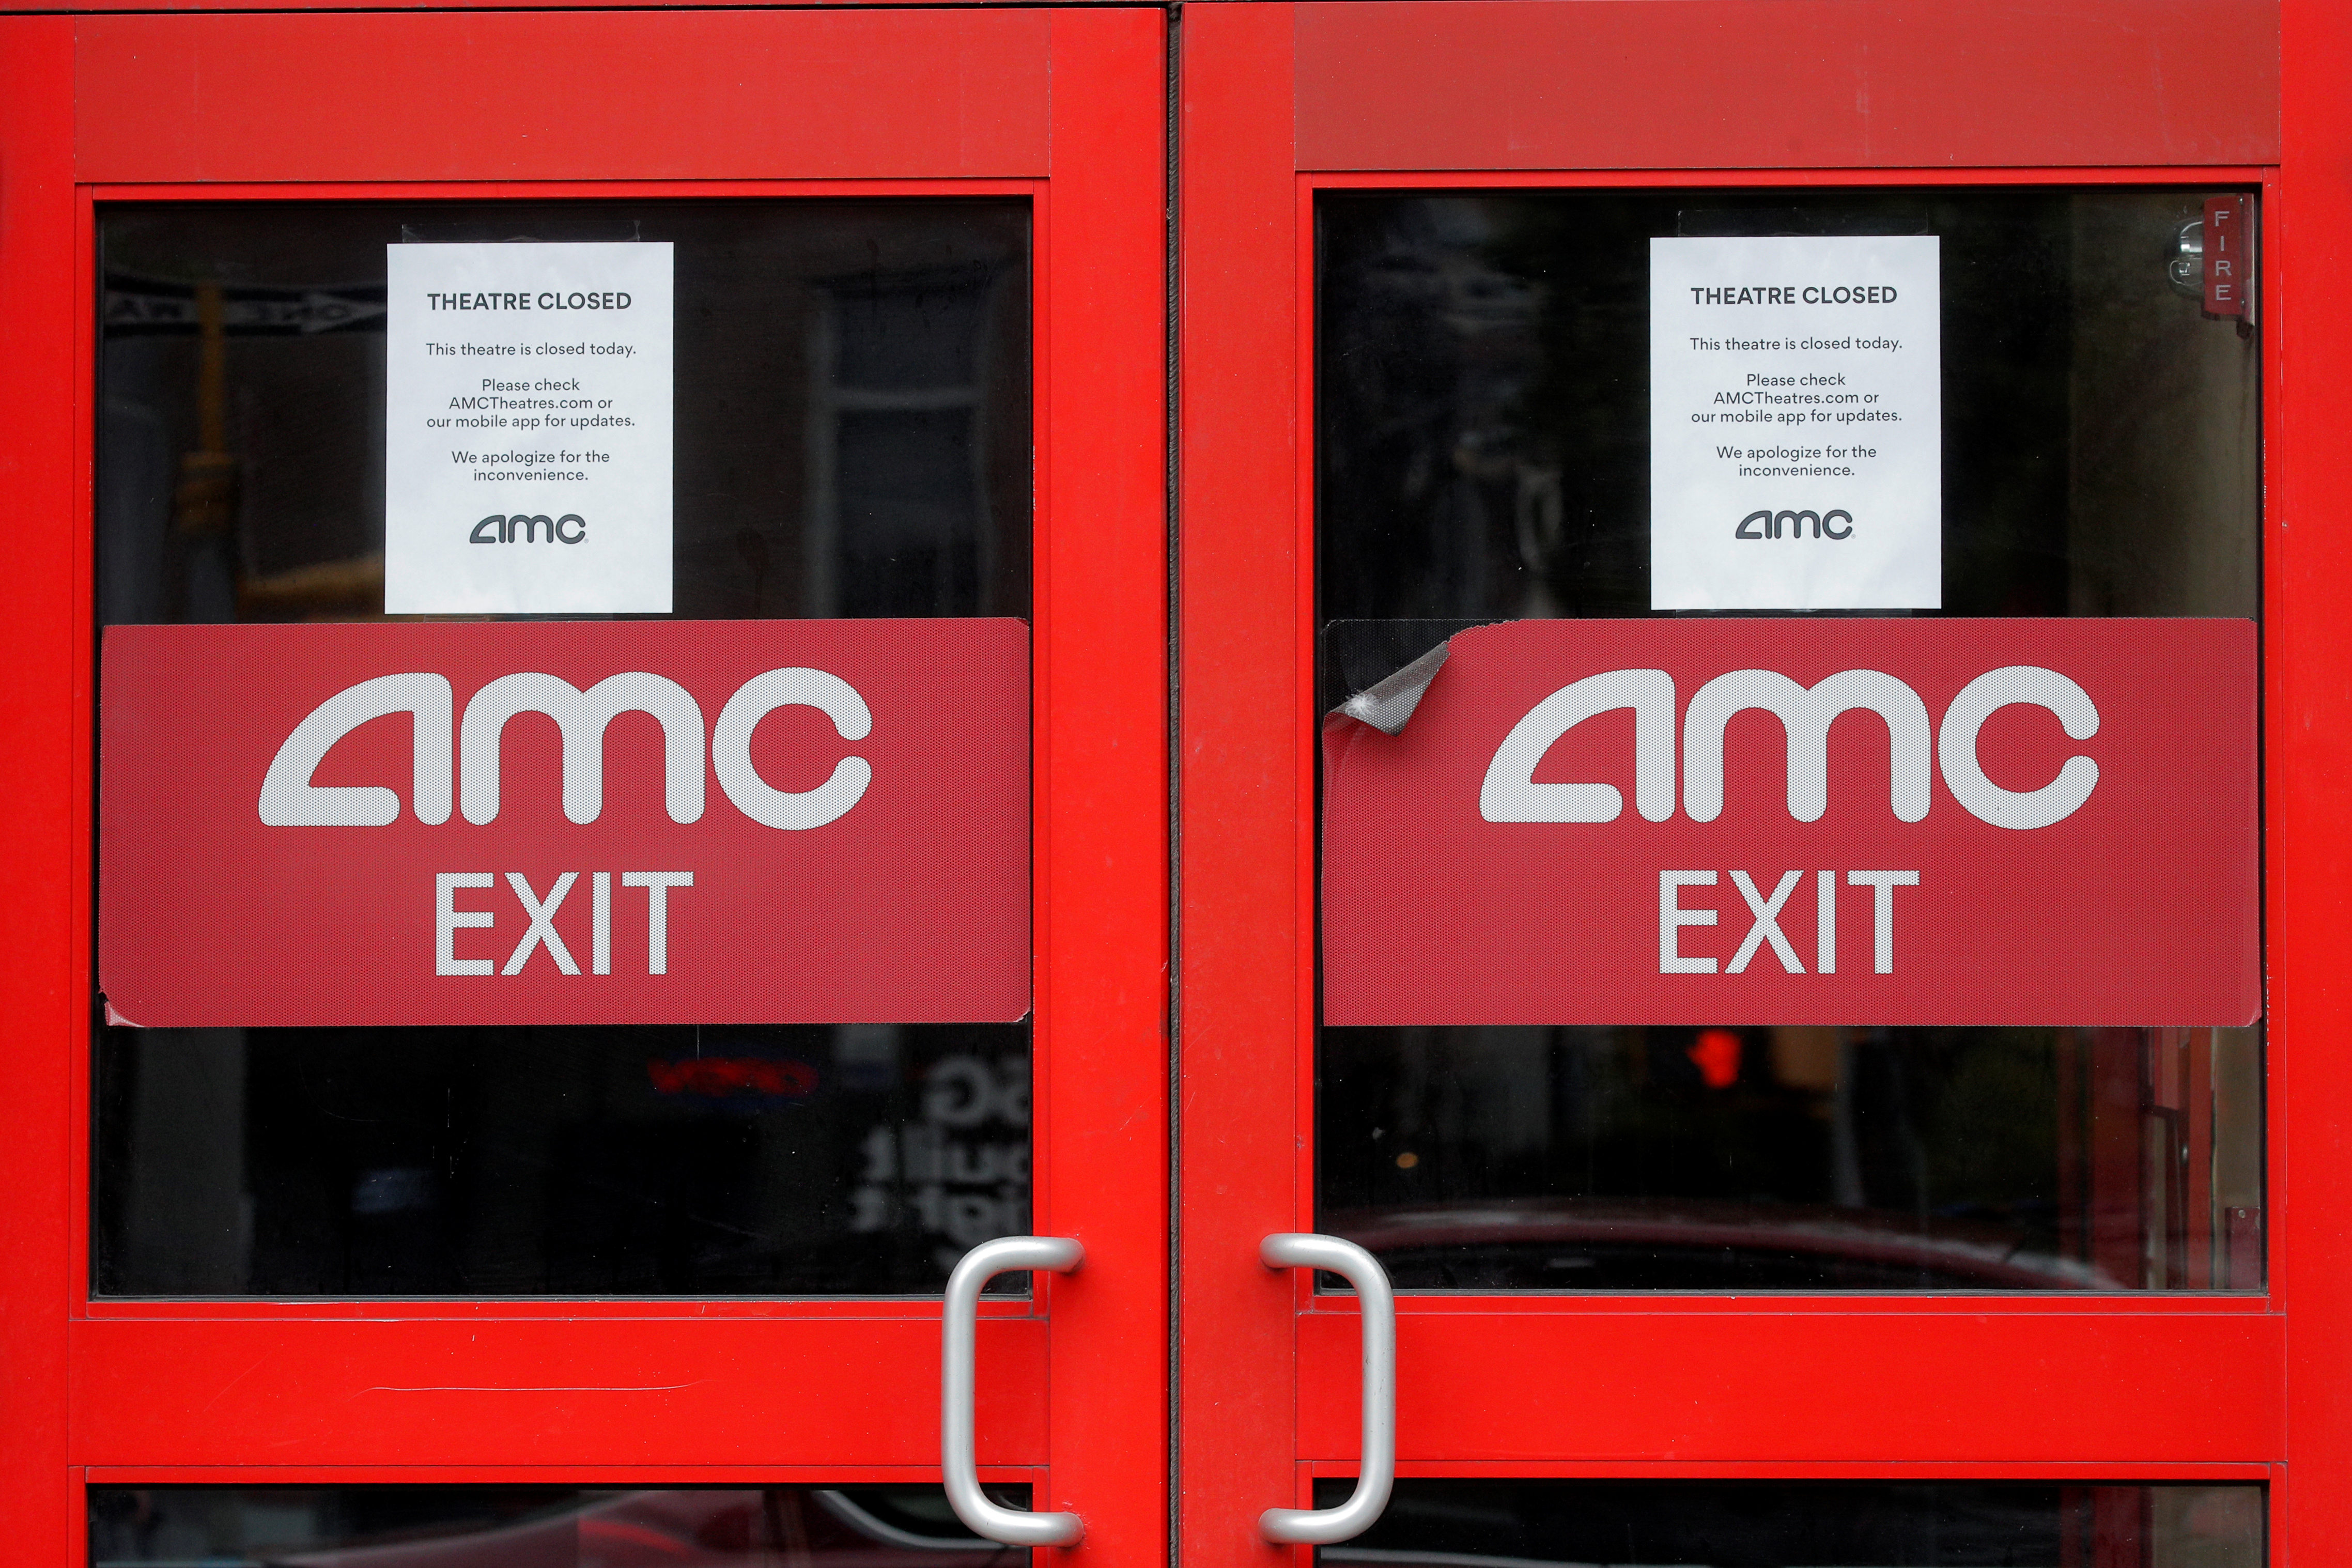 Closed signs are seen on an AMC Theatre during the outbreak of the coronavirus disease (COVID-19), in New York City, U.S., April 29, 2020. REUTERS/Brendan McDermid